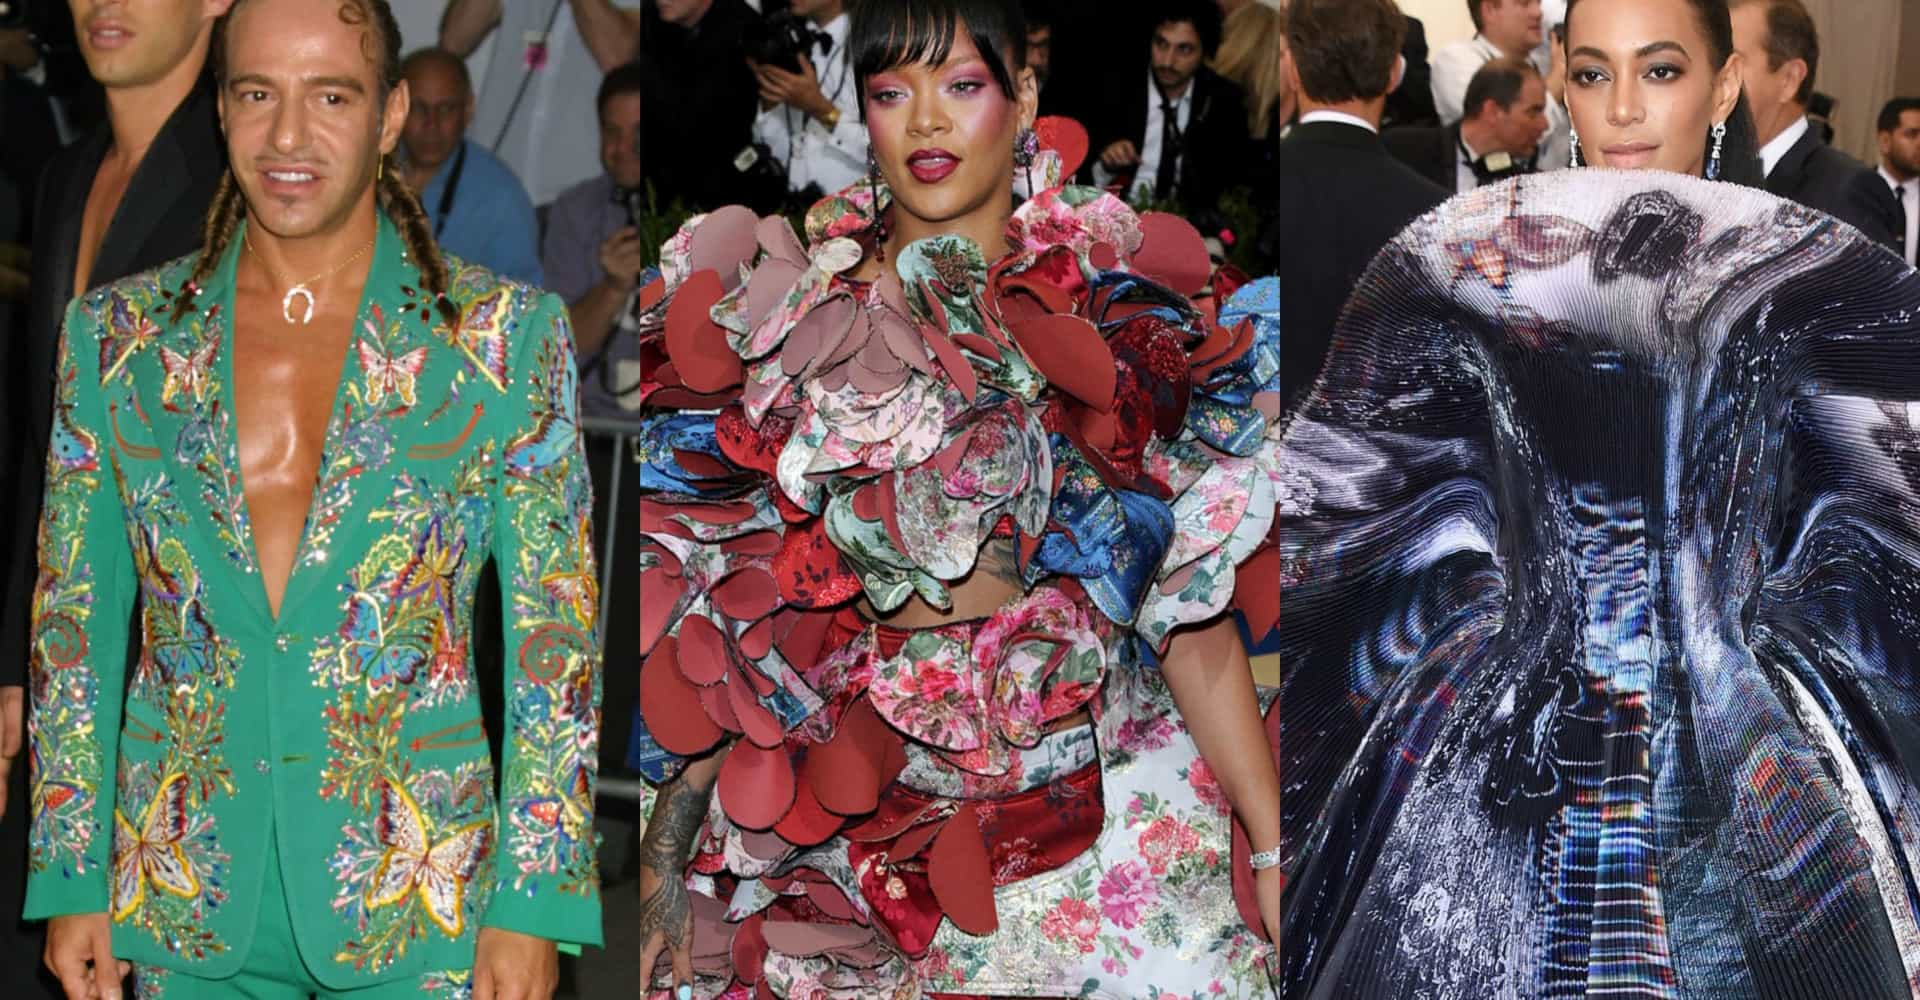 The all-time weirdest outfits of the Met Gala